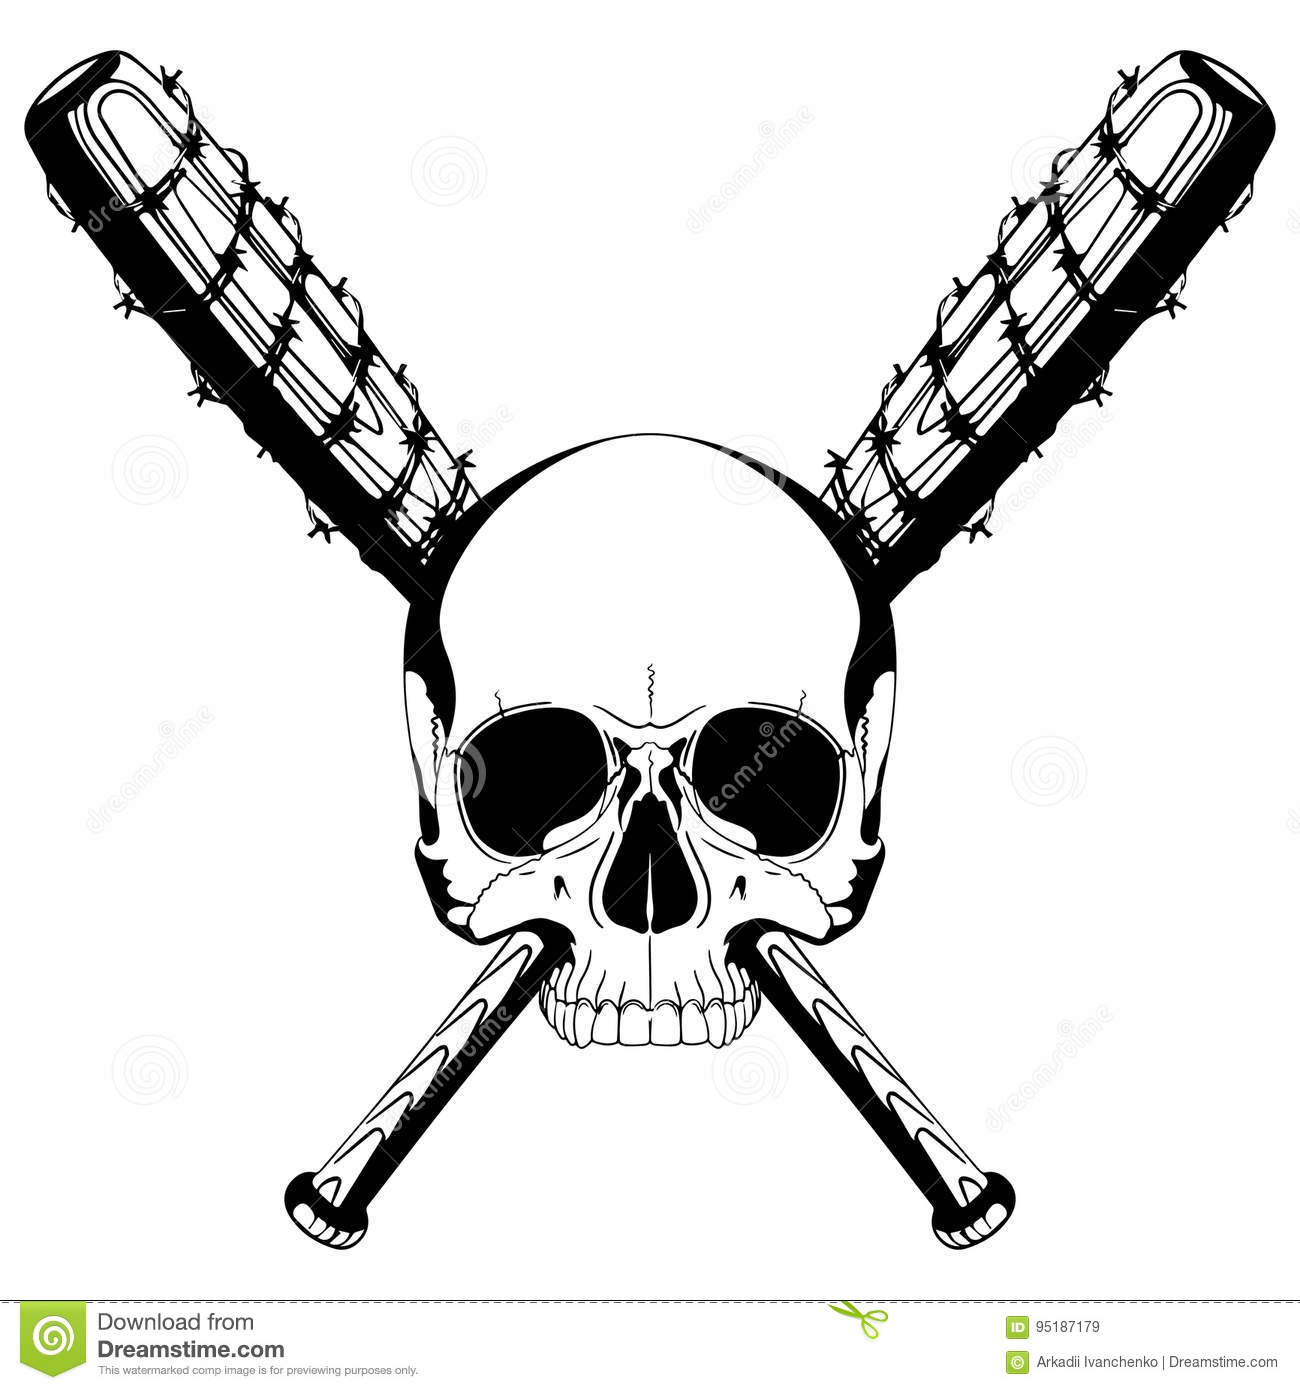 A Human Skull And Two Crossed Baseball Bats Covered With